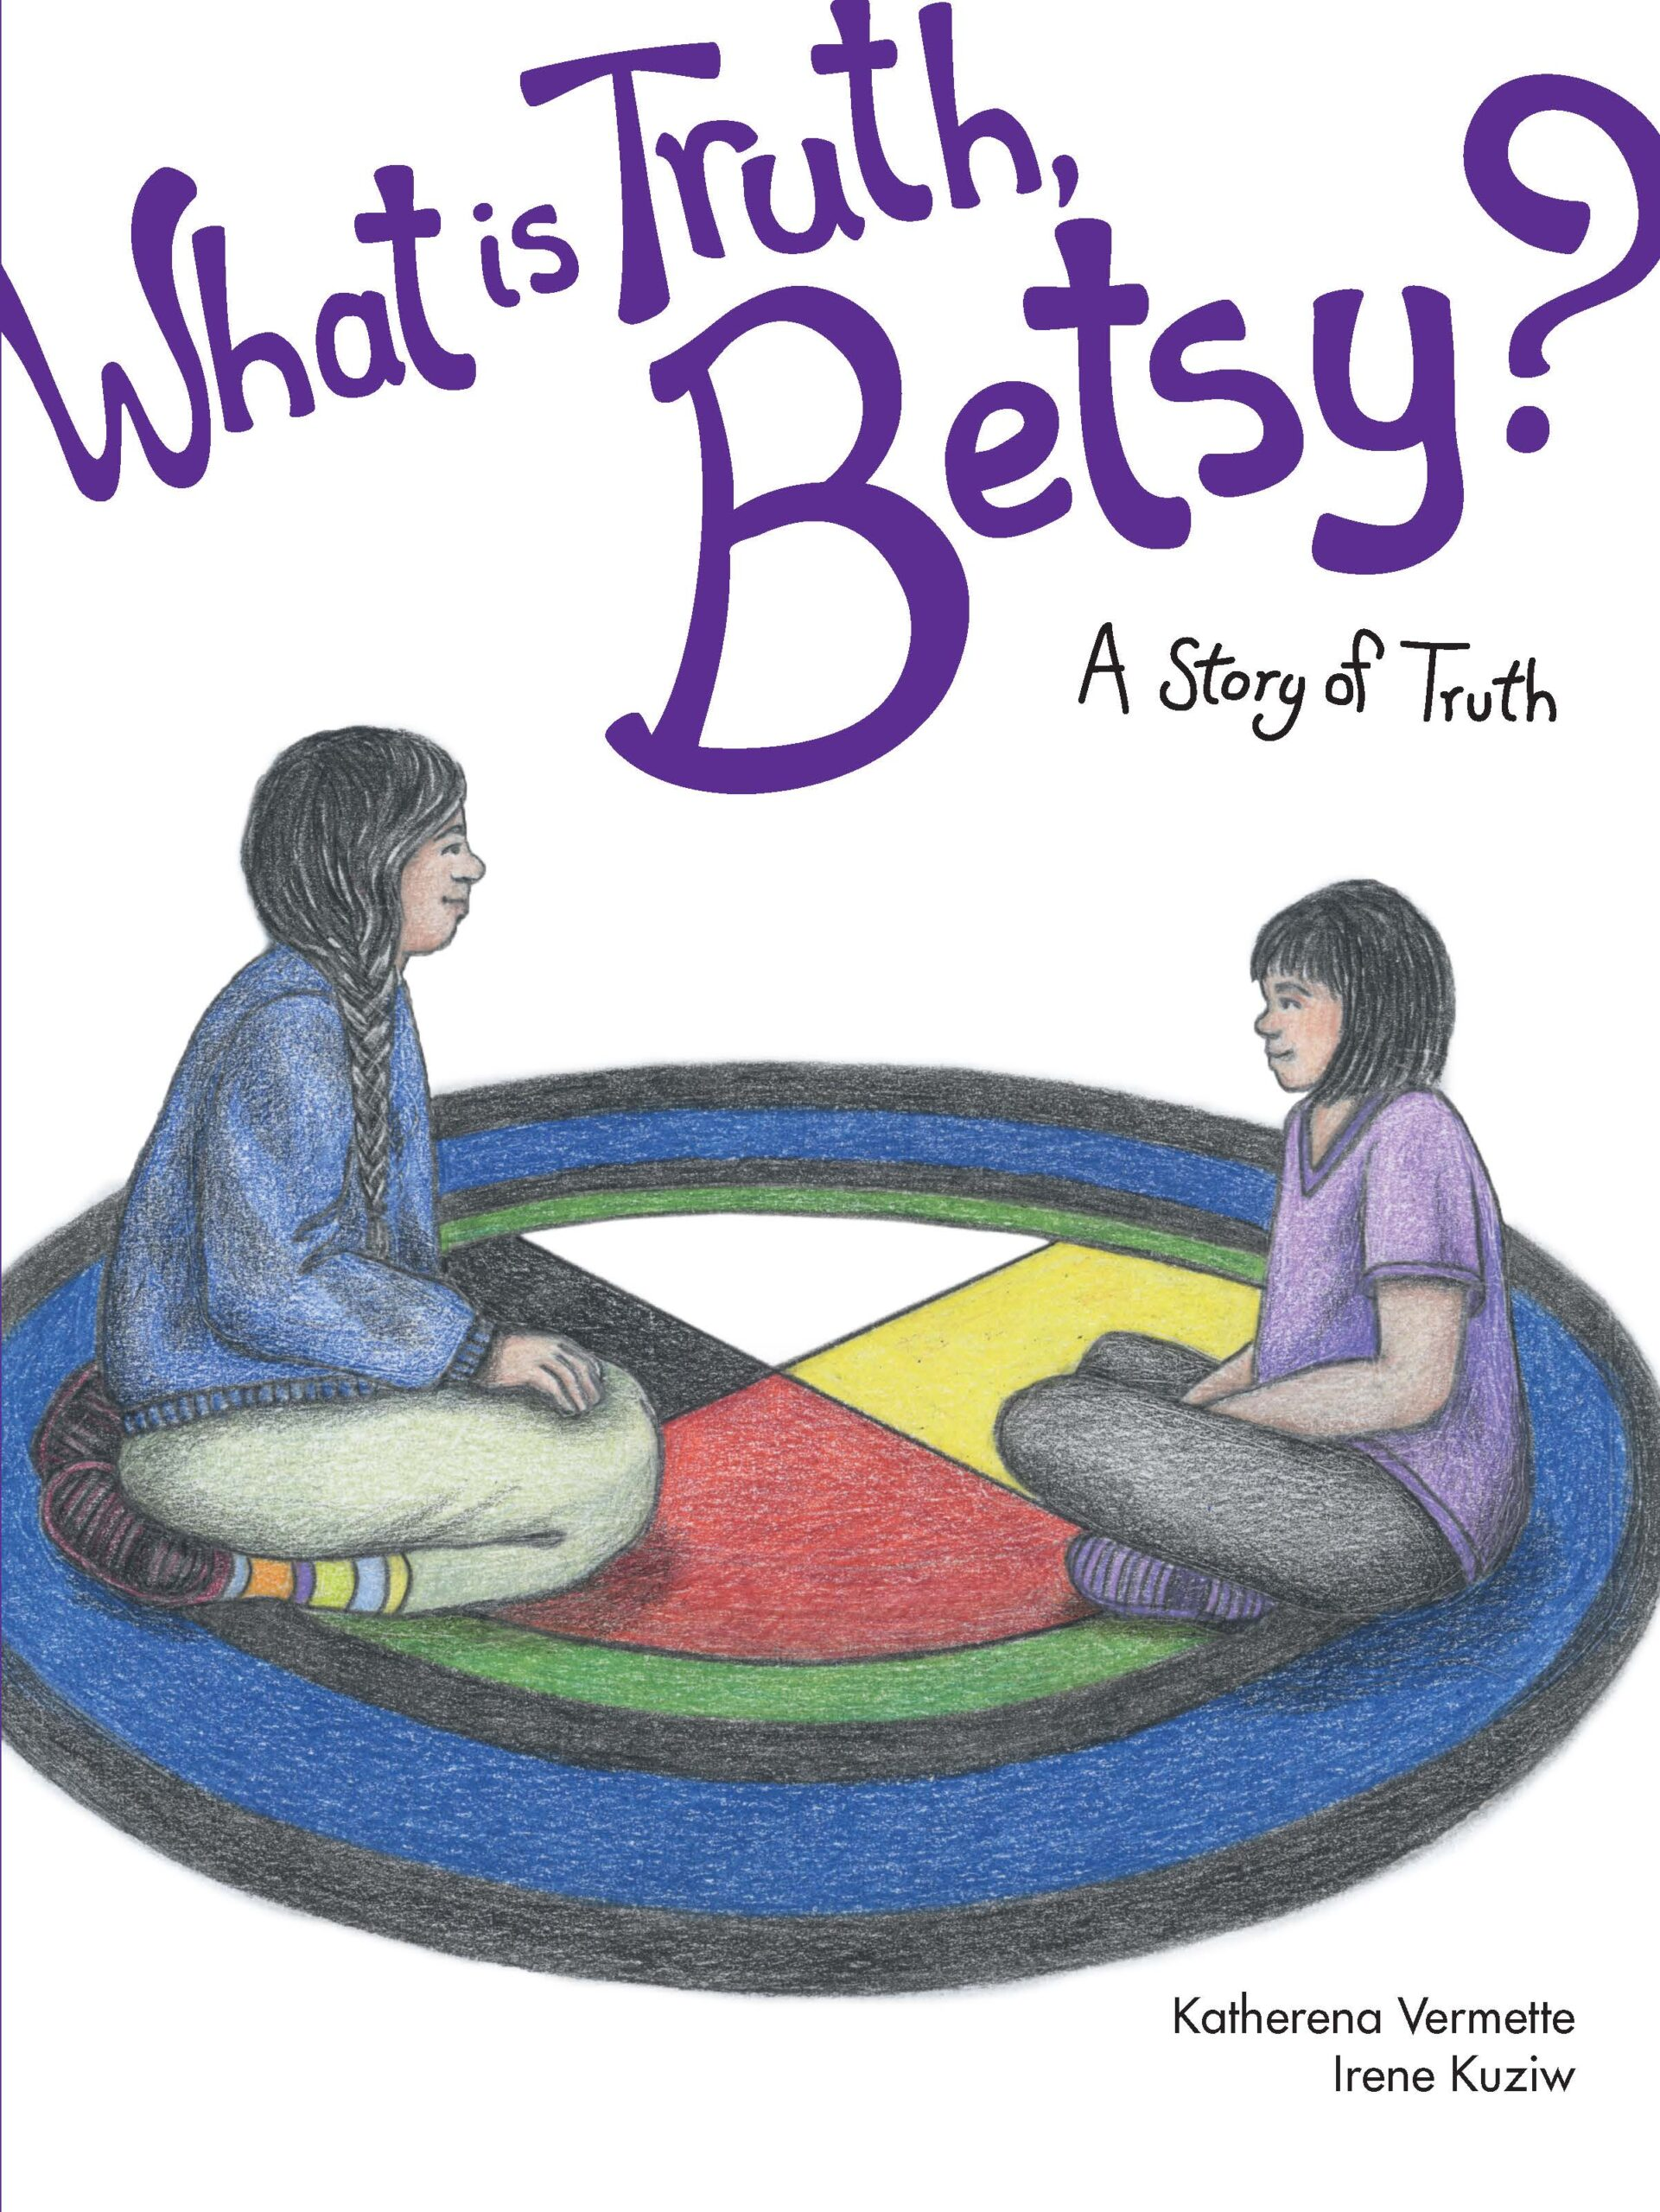 The book cover for What is Truth, Betsy?: A Story of Truth by Katherena Vermette.